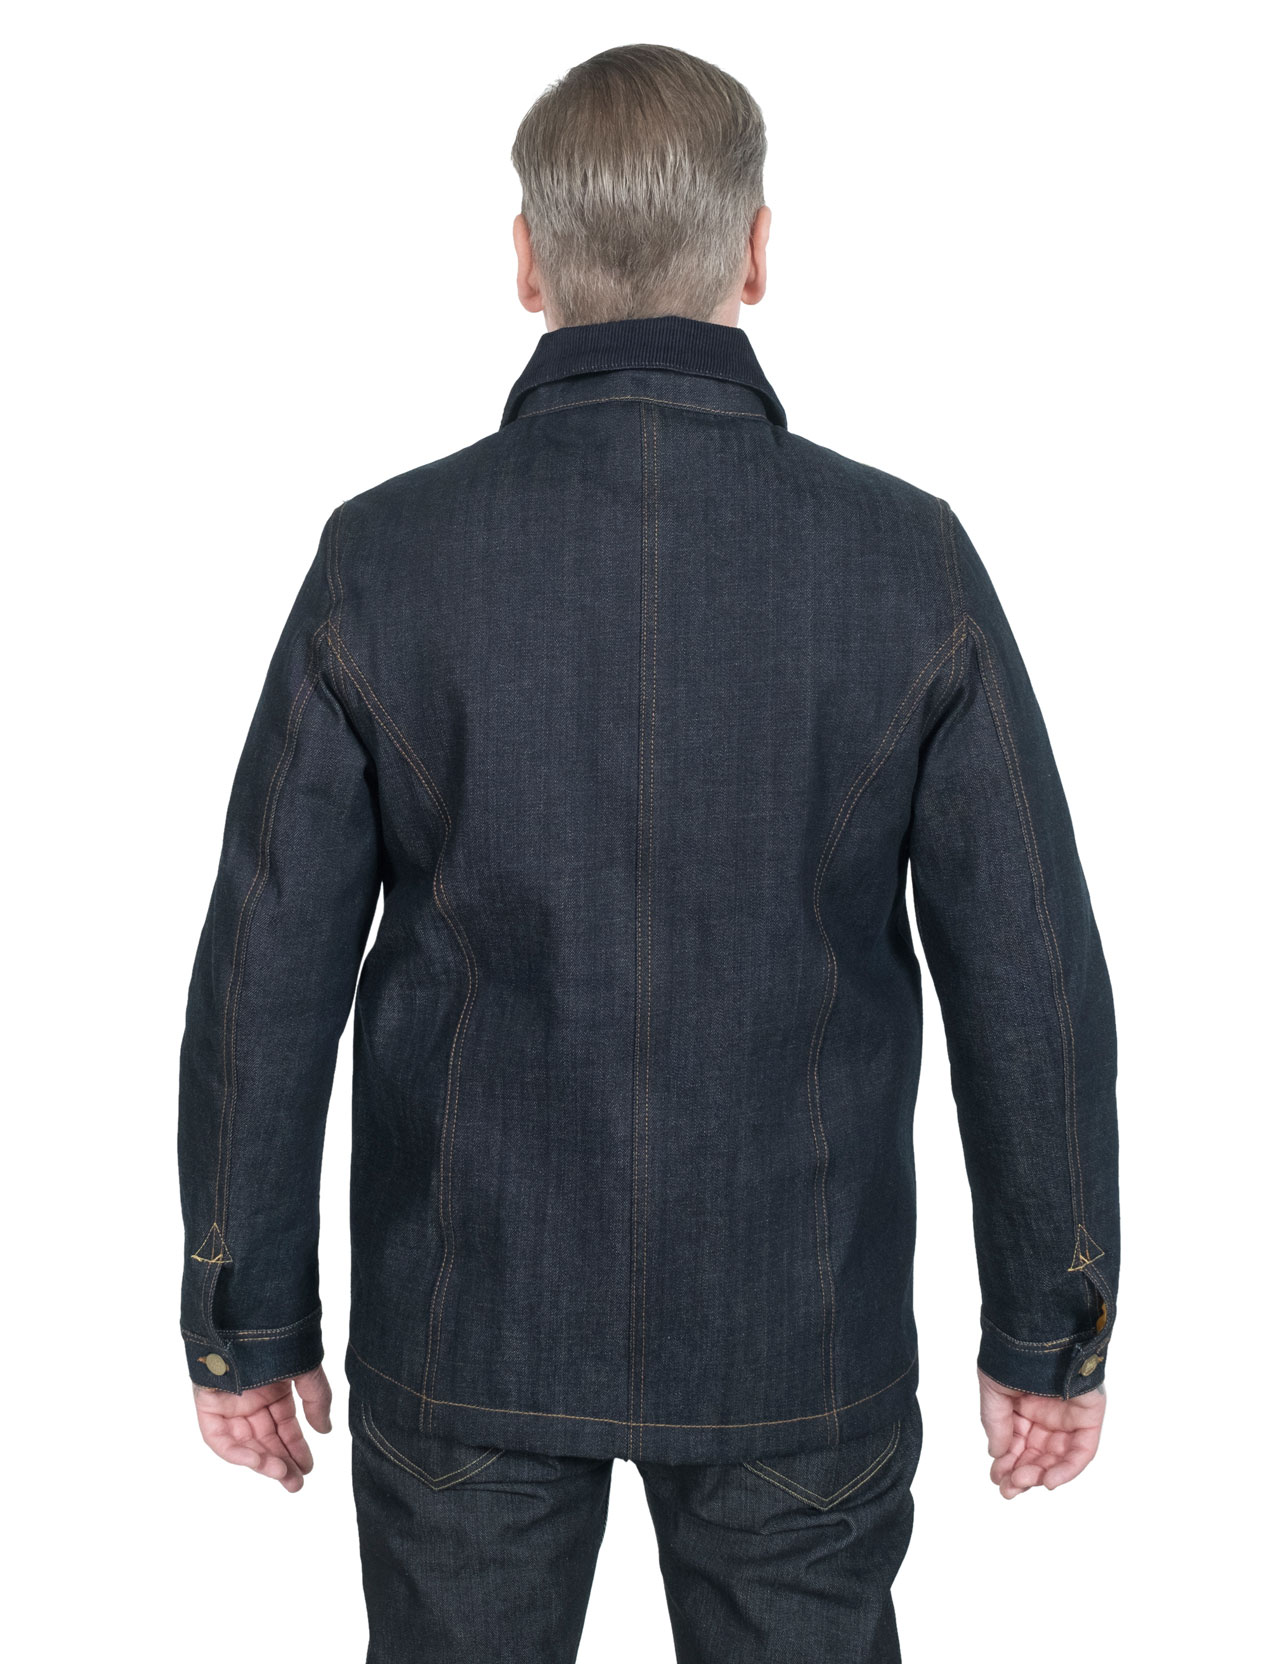 437870e38d4 Eat Dust - 673-B Apache Linned Raw Selvage Jeans Jacket